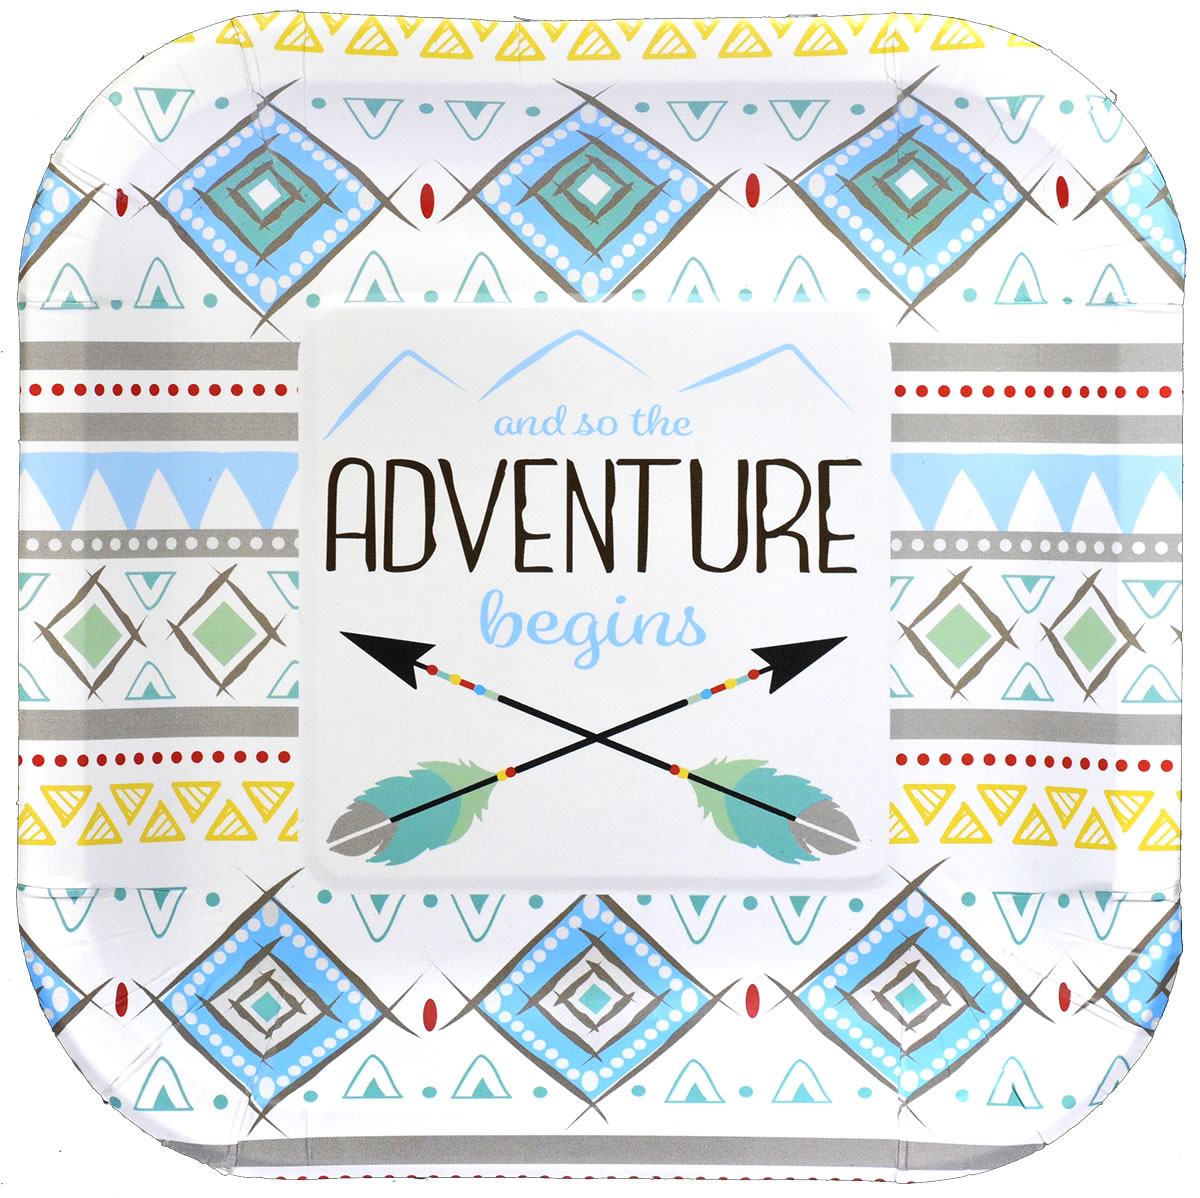 The Adventure Begins BOY 7 inch Party Plate